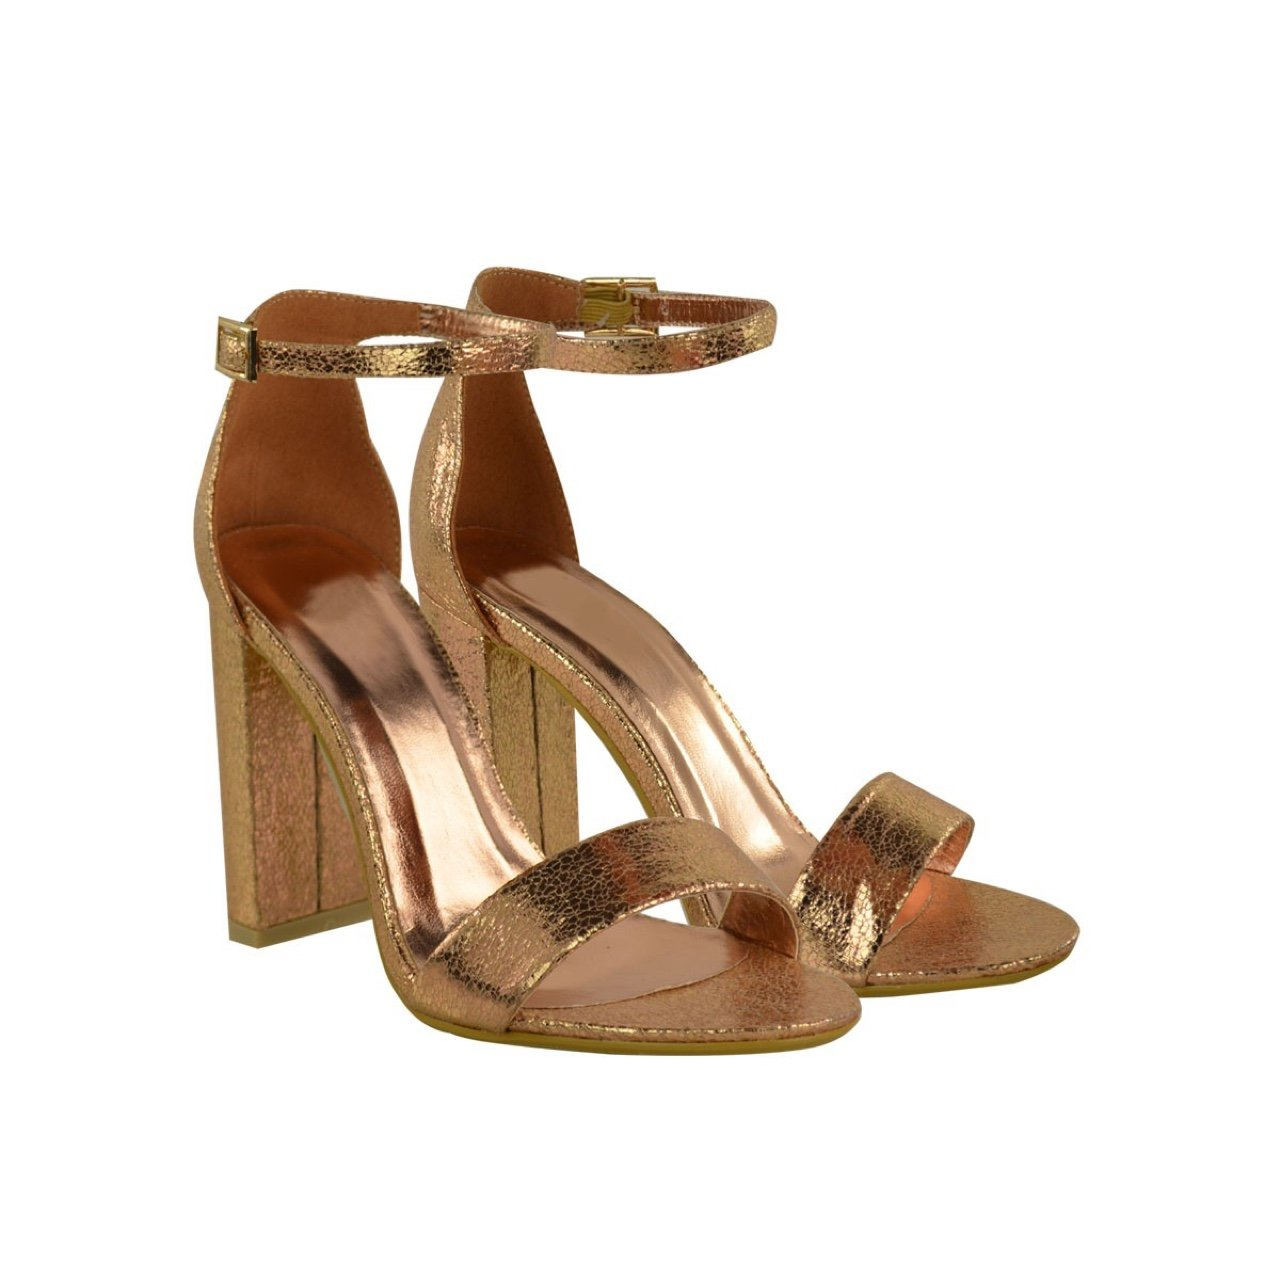 d254e9ed2c @heelberry. 3 years ago. Manchester, UK. Heelberry YONCE Rose Gold Crinkle  Block High Heel Barely There Strappy Sandals ...